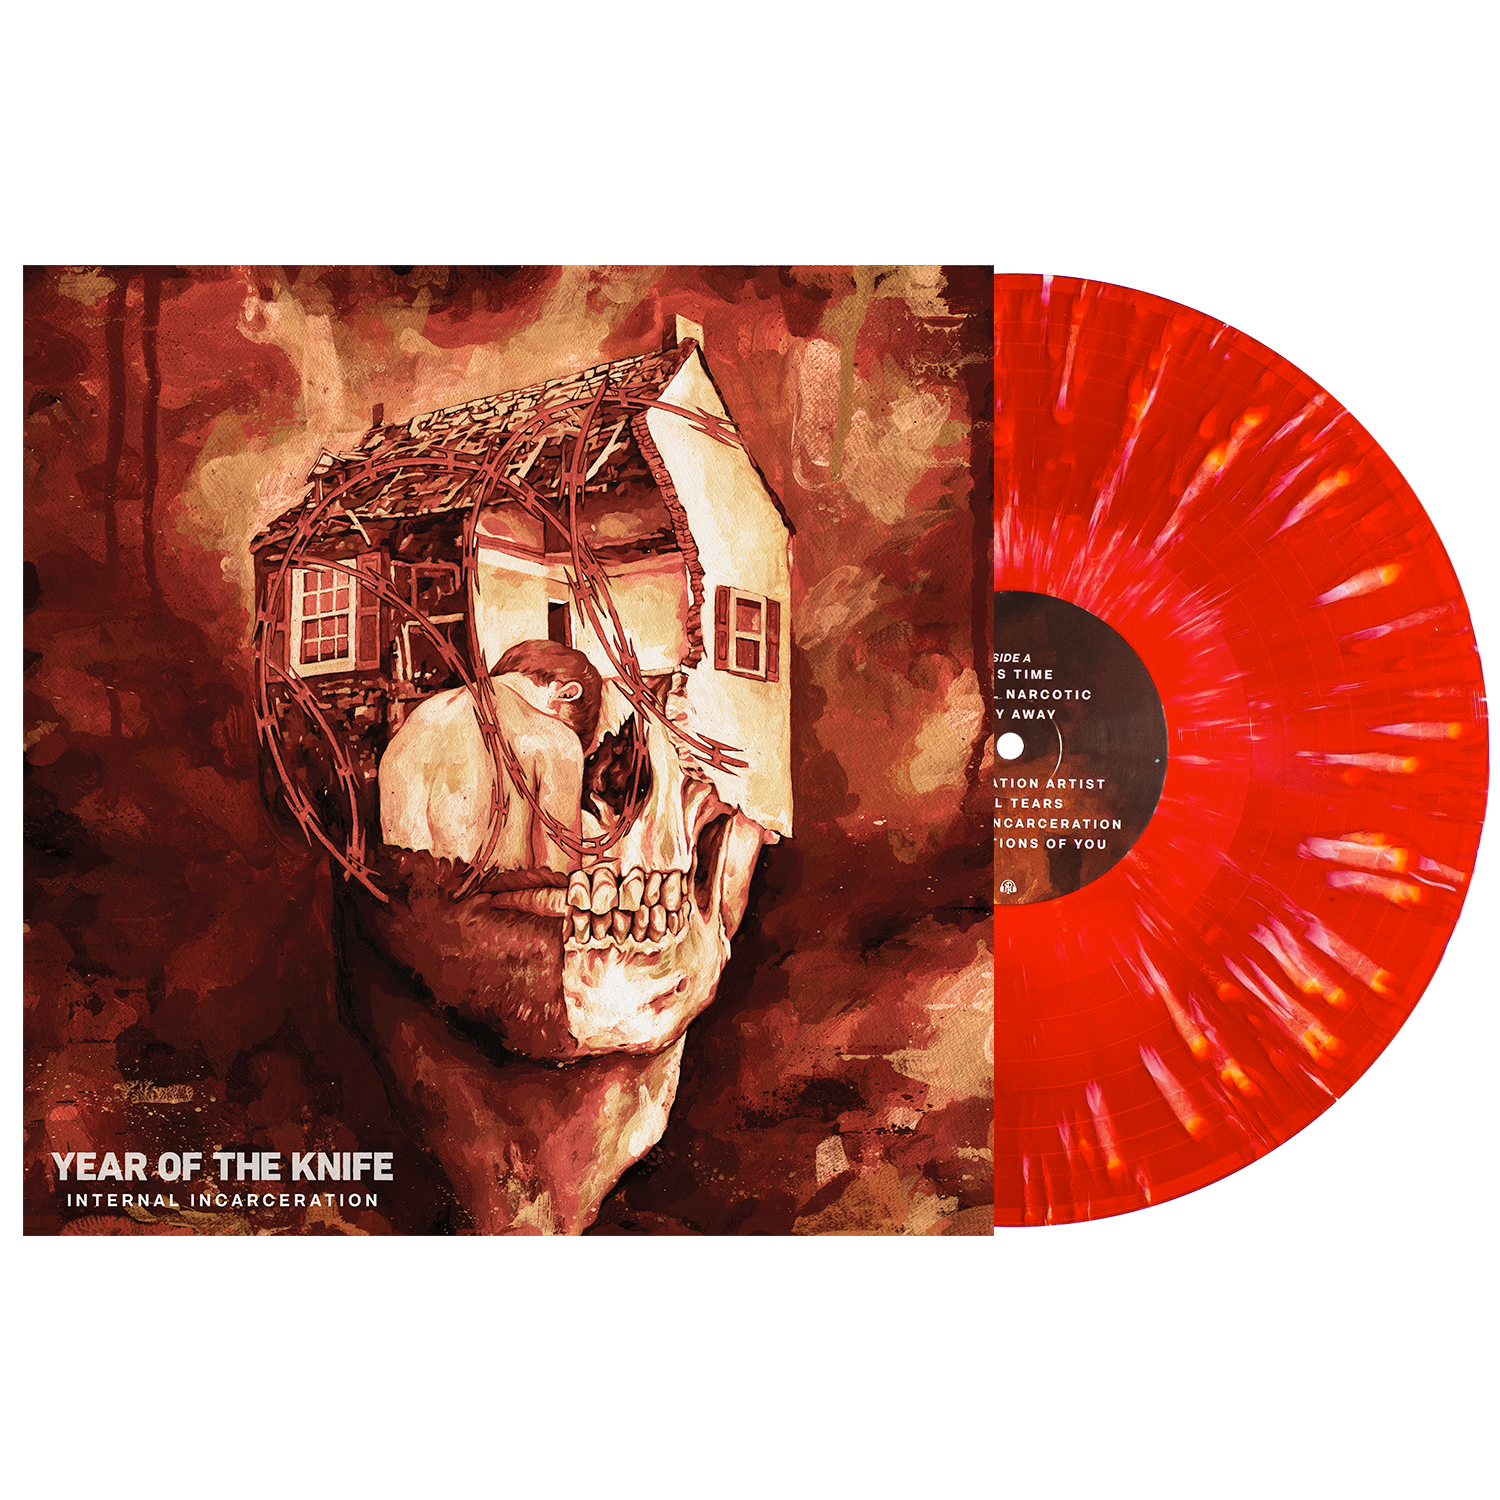 Year of the Knife 'Internal Incarceration' LP (Various - Bone in Blood Red w/ heavy Bone splatter)